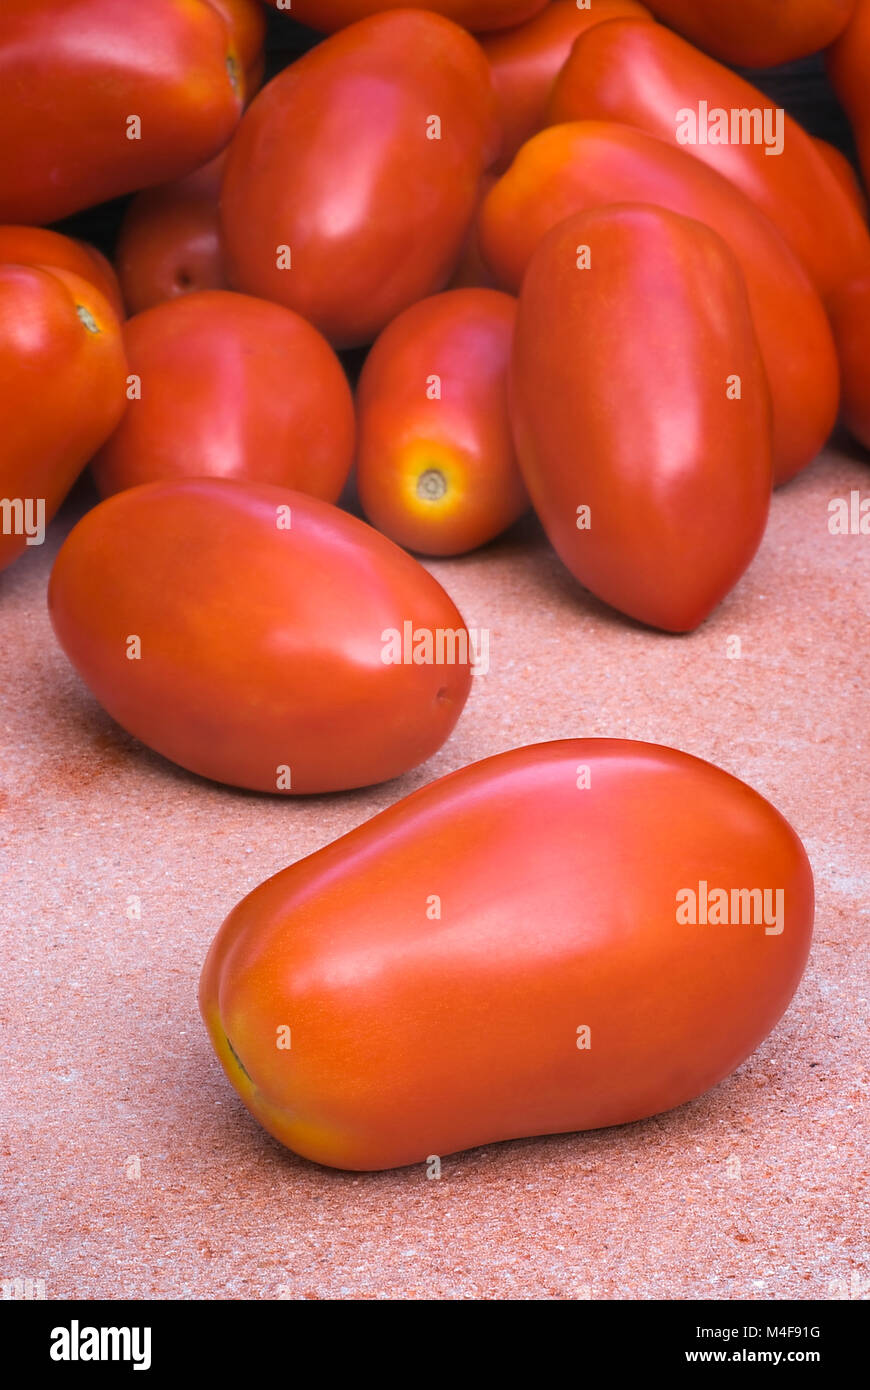 The best varieties of tomatoes. Tomato de baro red